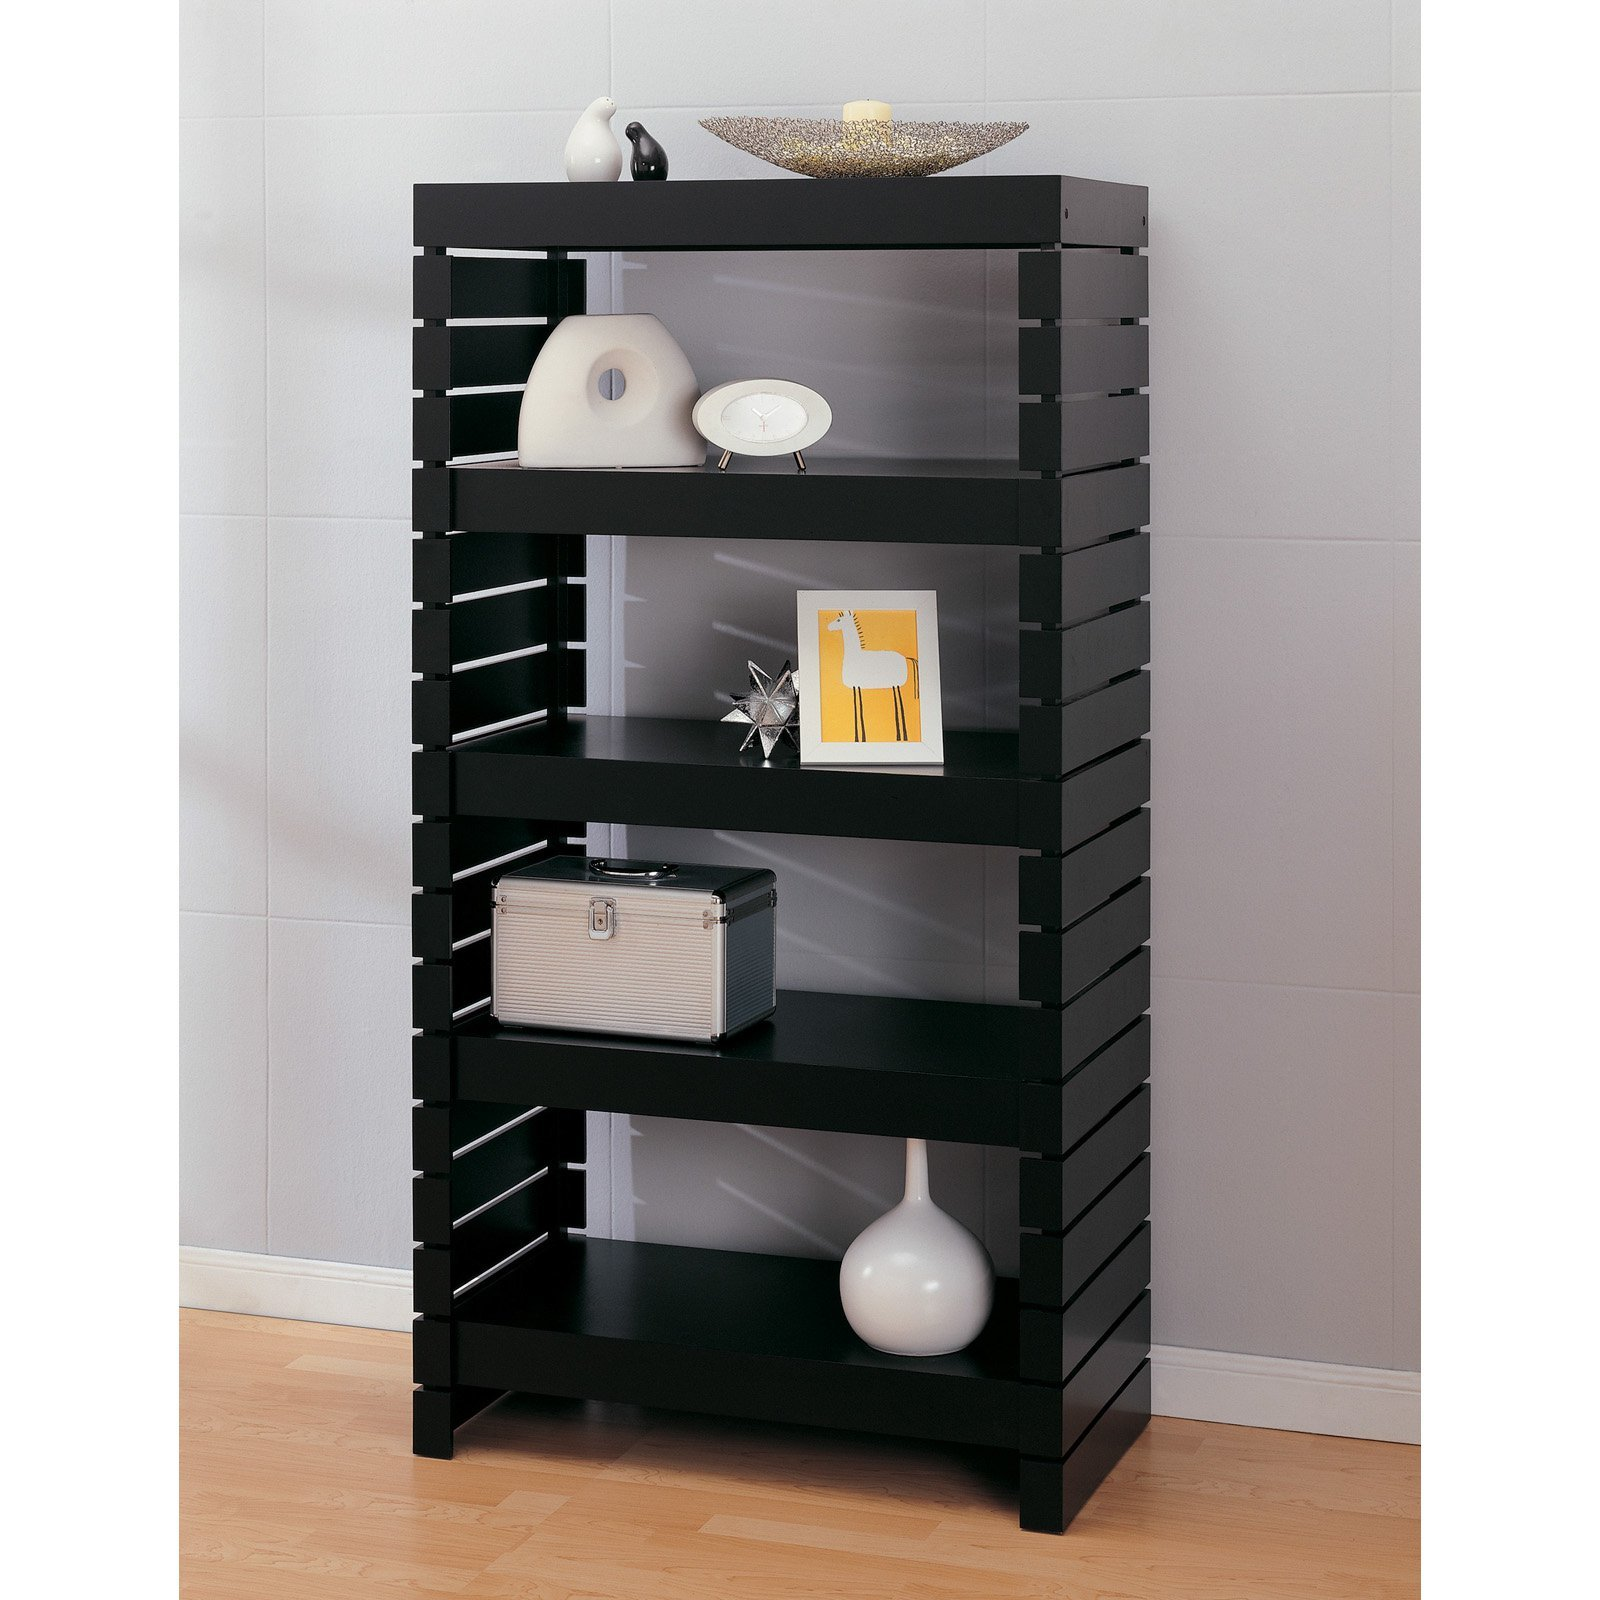 Bookcase (39655-1) 4 Tier Black Modern Bookshelves Constructed of Strong Engineered Wood Material - 32L x 17W x 60.25H in. Assembly Required